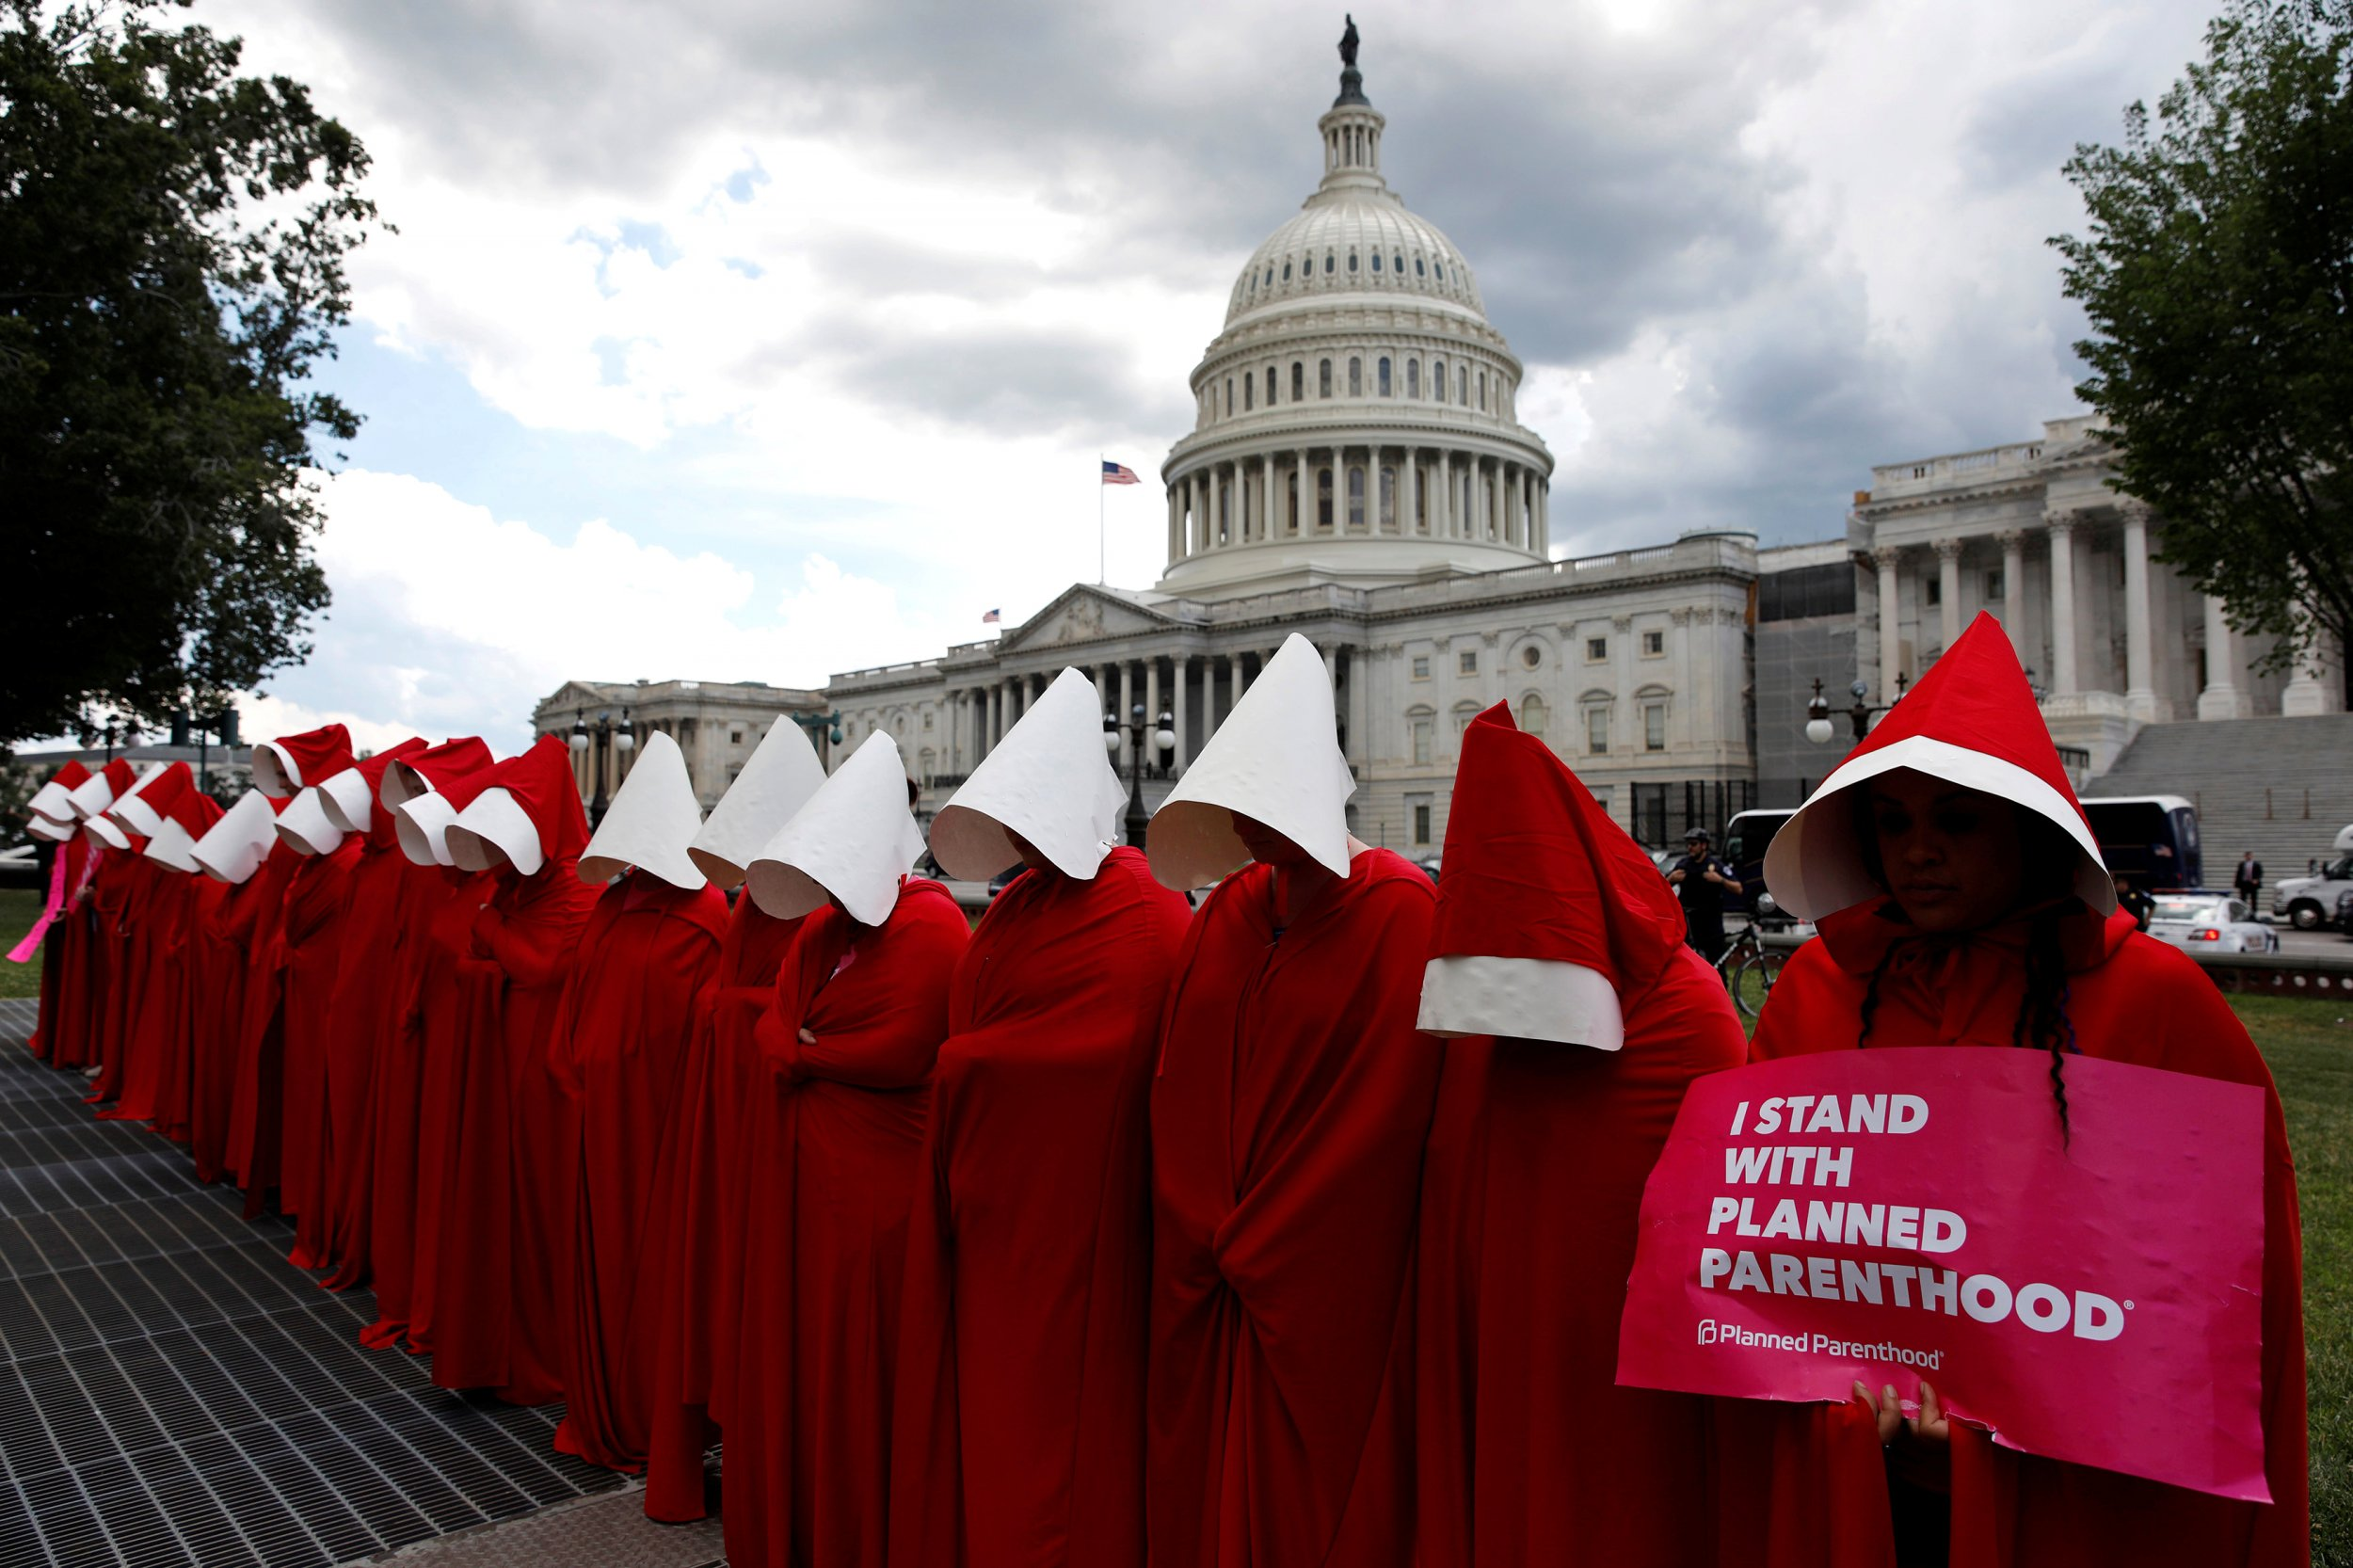 Women S Rights Why The Handmaid Has Become A Symbol Of